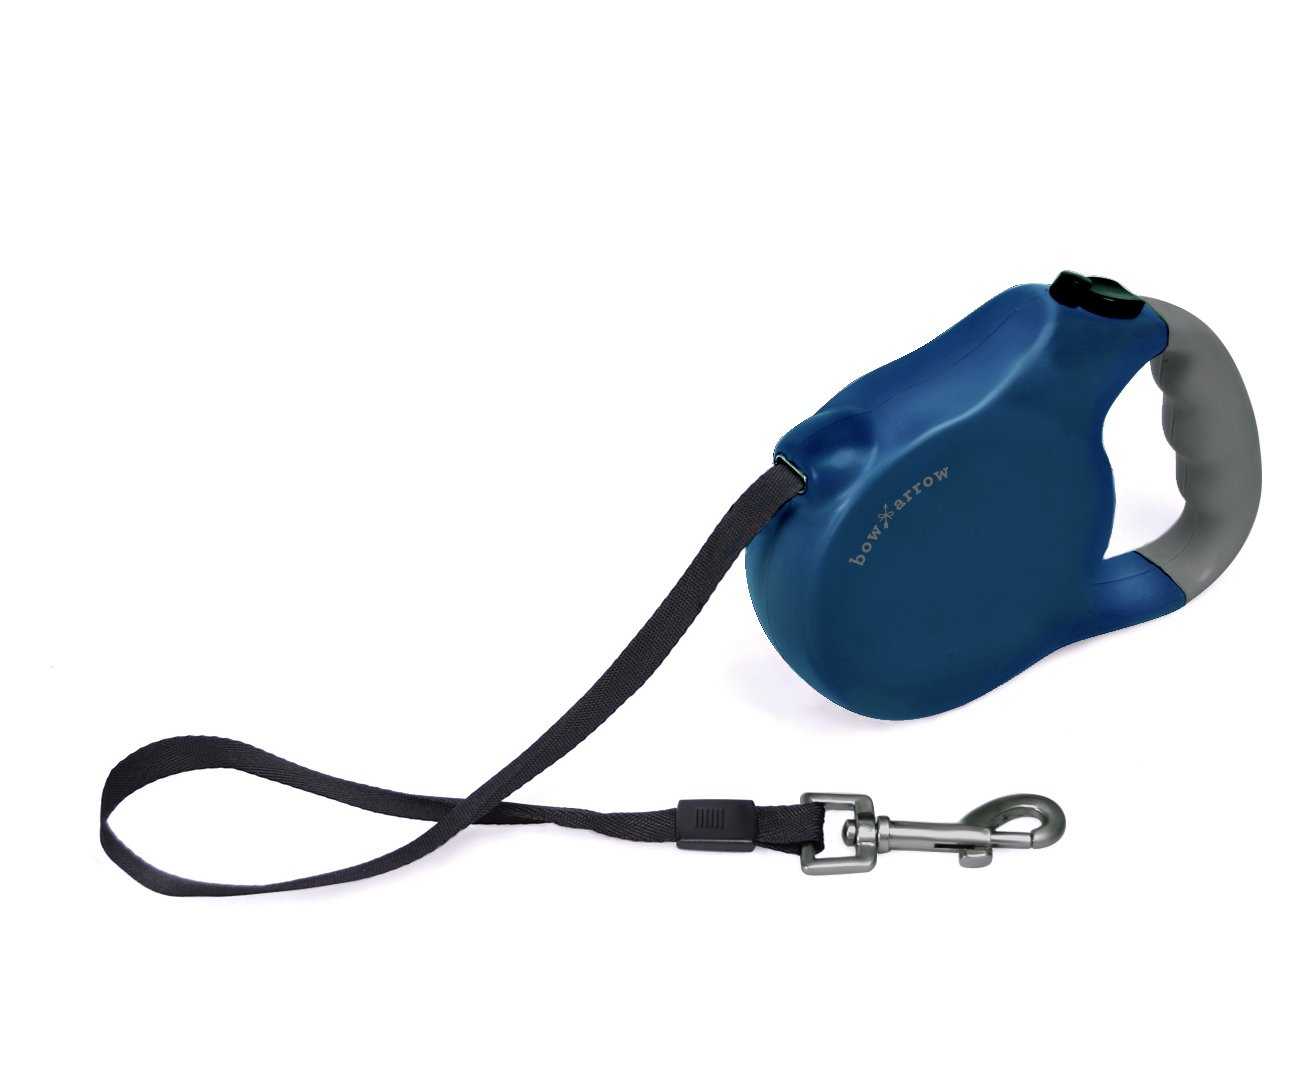 bluee Large bluee Large Bow & Arrow bluee Retractable Dog Leash for Dogs Up to 90 lbs with Easy to Use Push Button Brake and Release, Extends 24 Feet Long